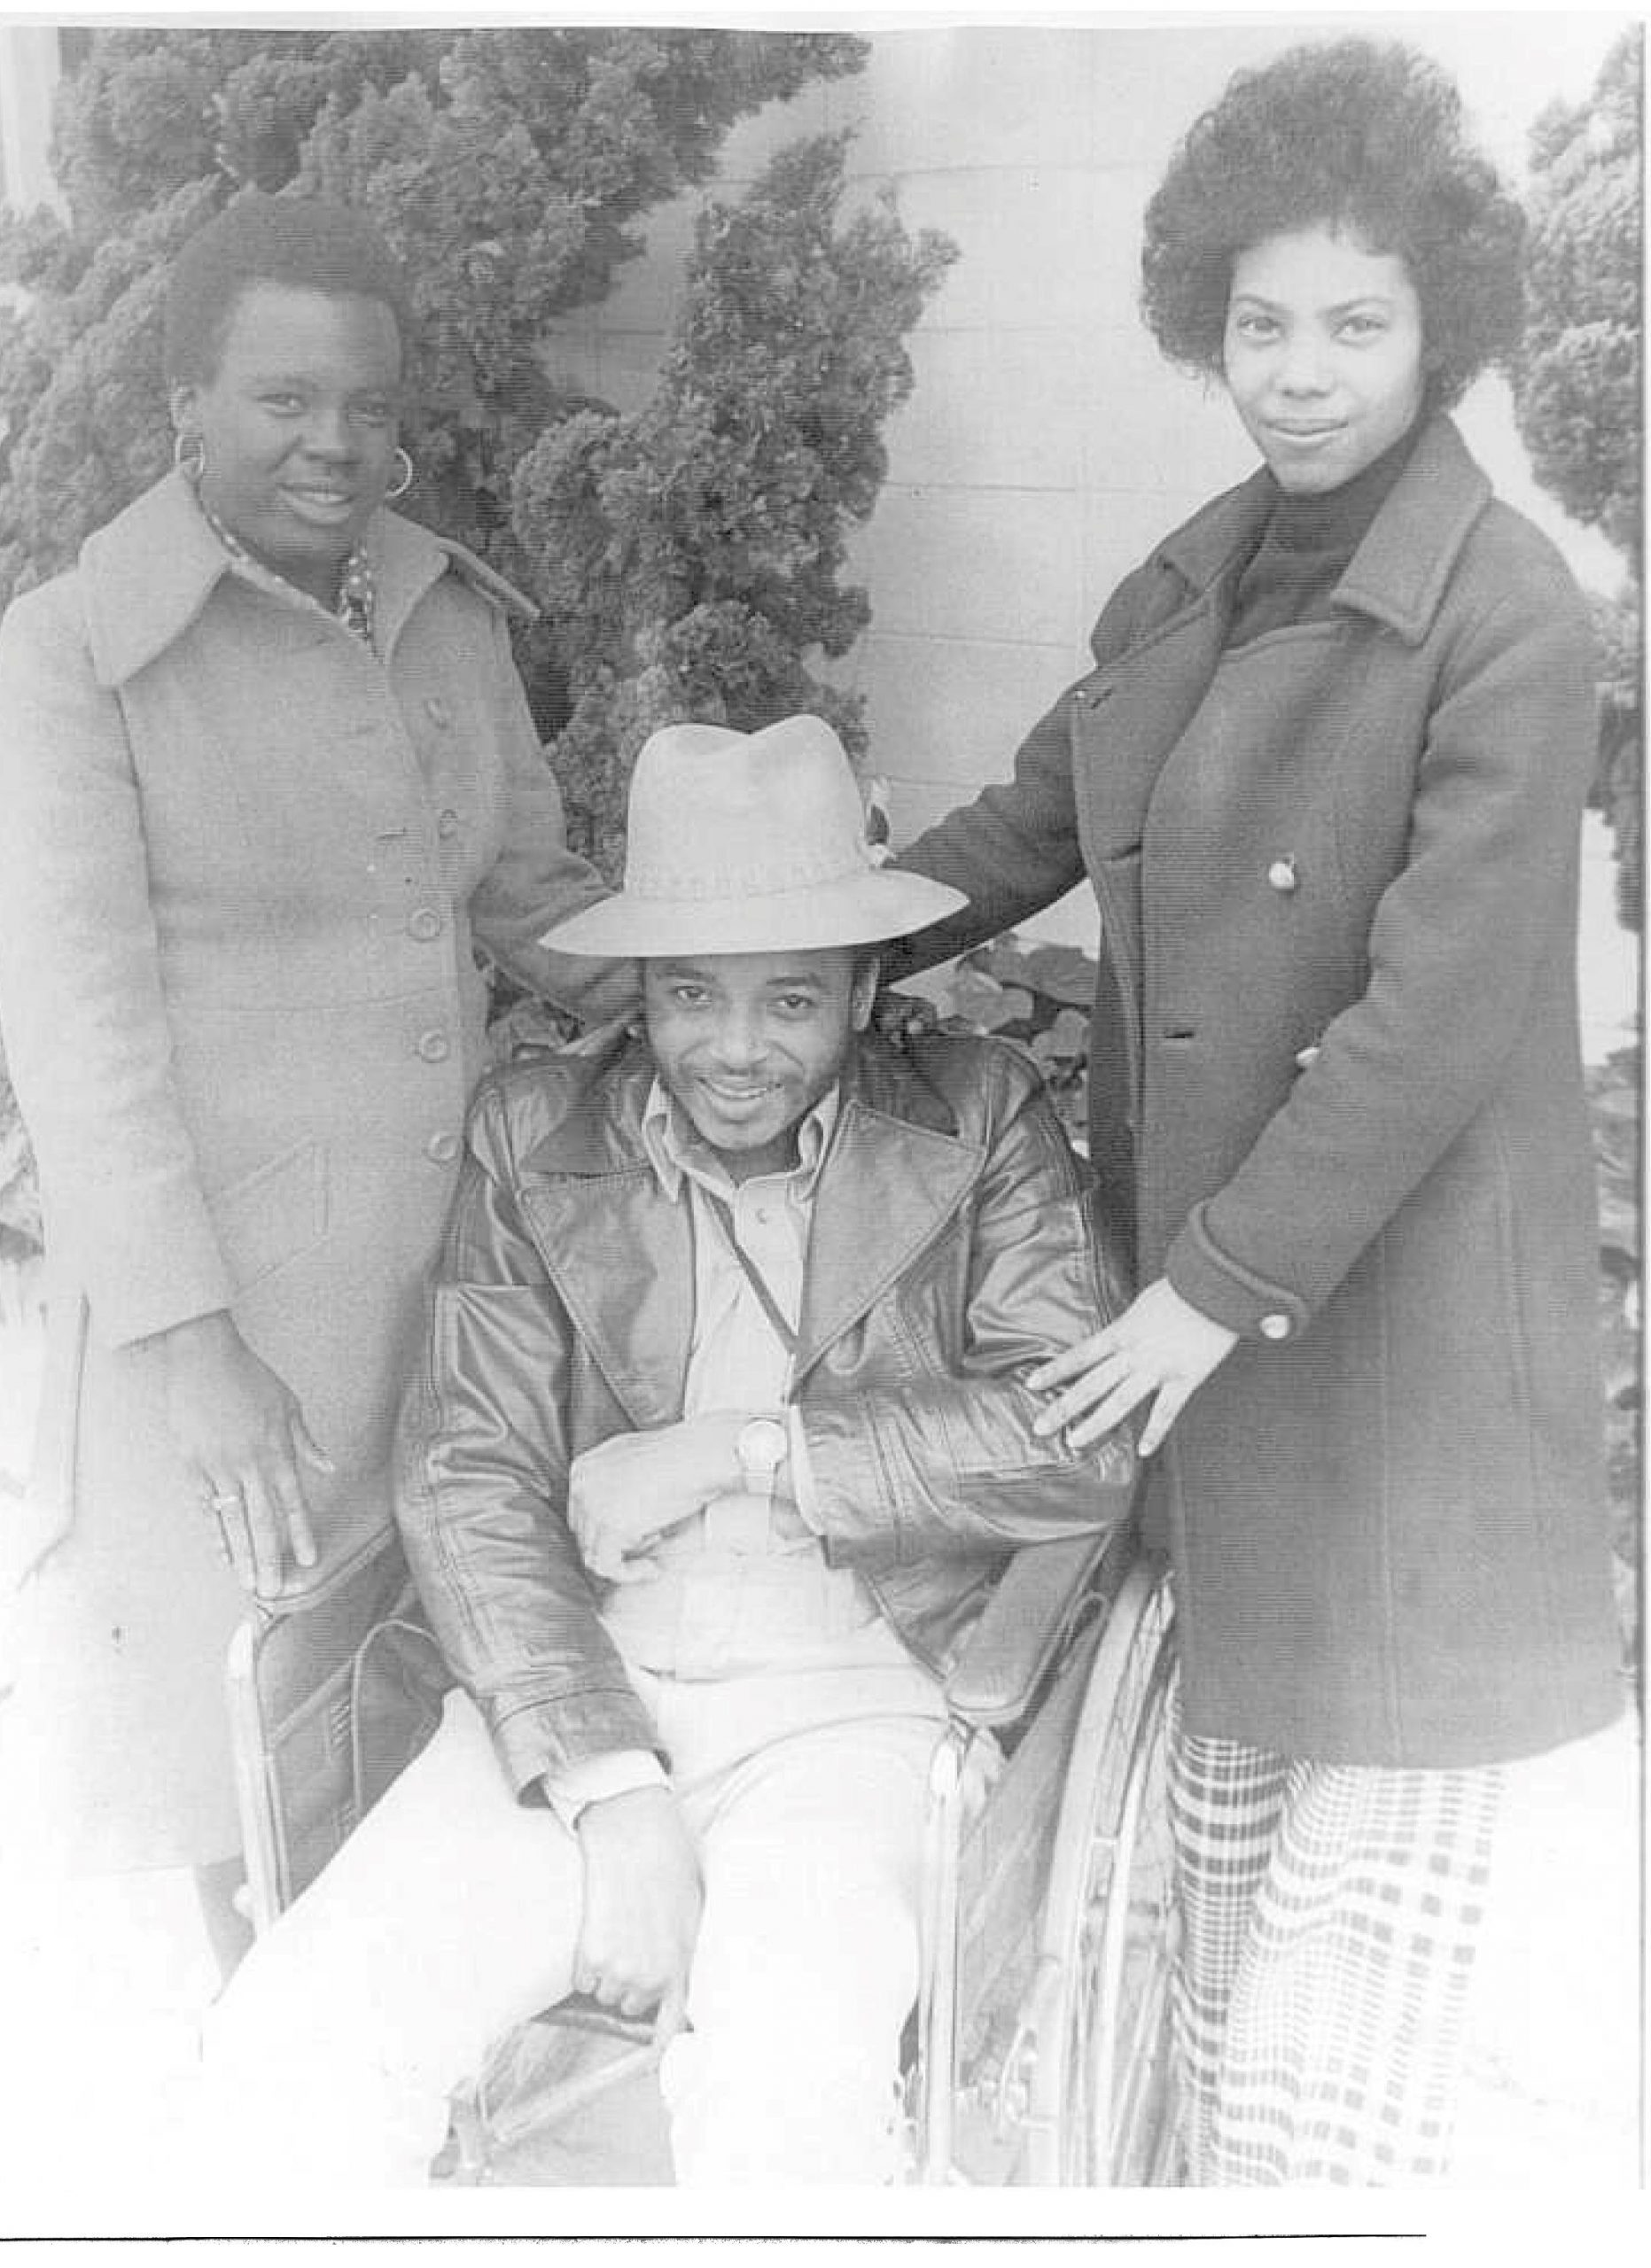 Two Black women, Barbara P. and Arlene C. standing on either side of Brad Lomax, a Black man who is seated in a wheelchair.